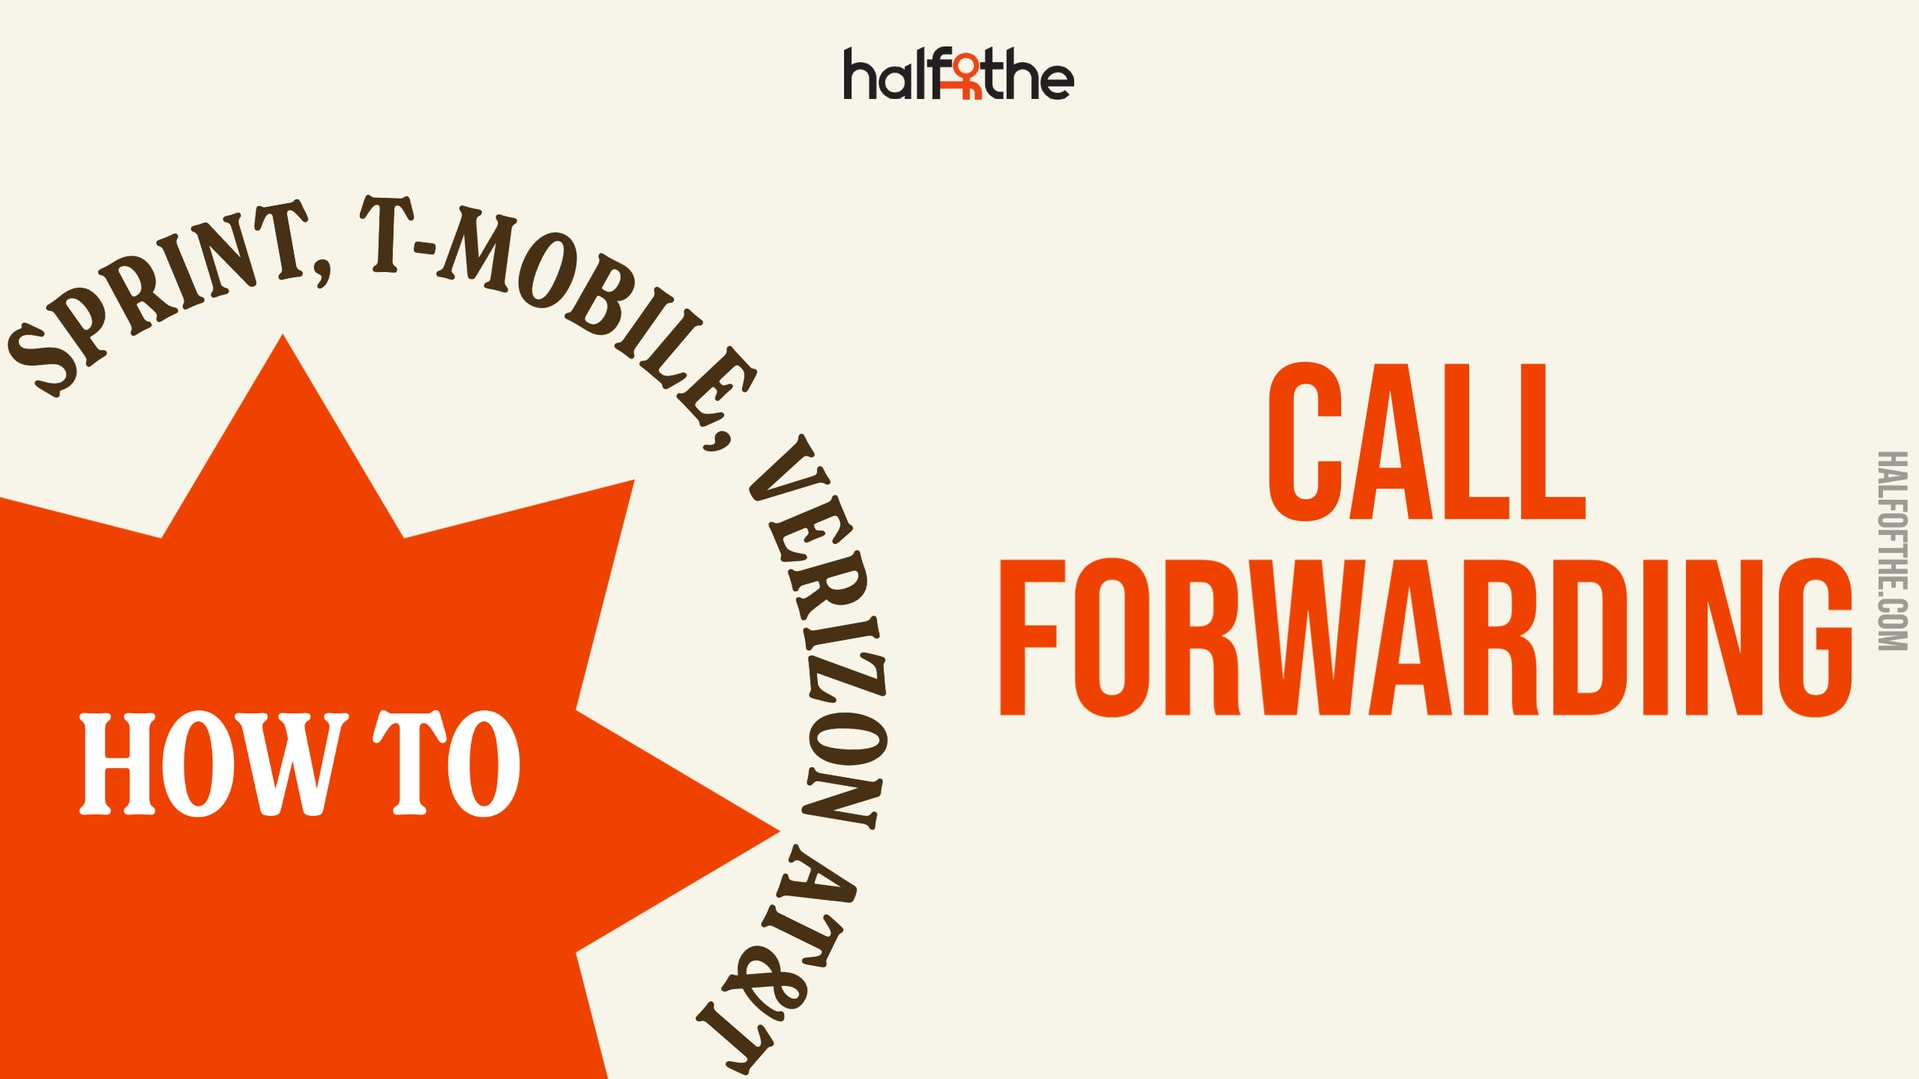 How to set up Call Forwarding with Sprint, T-Mobile, Verizon AT&T?